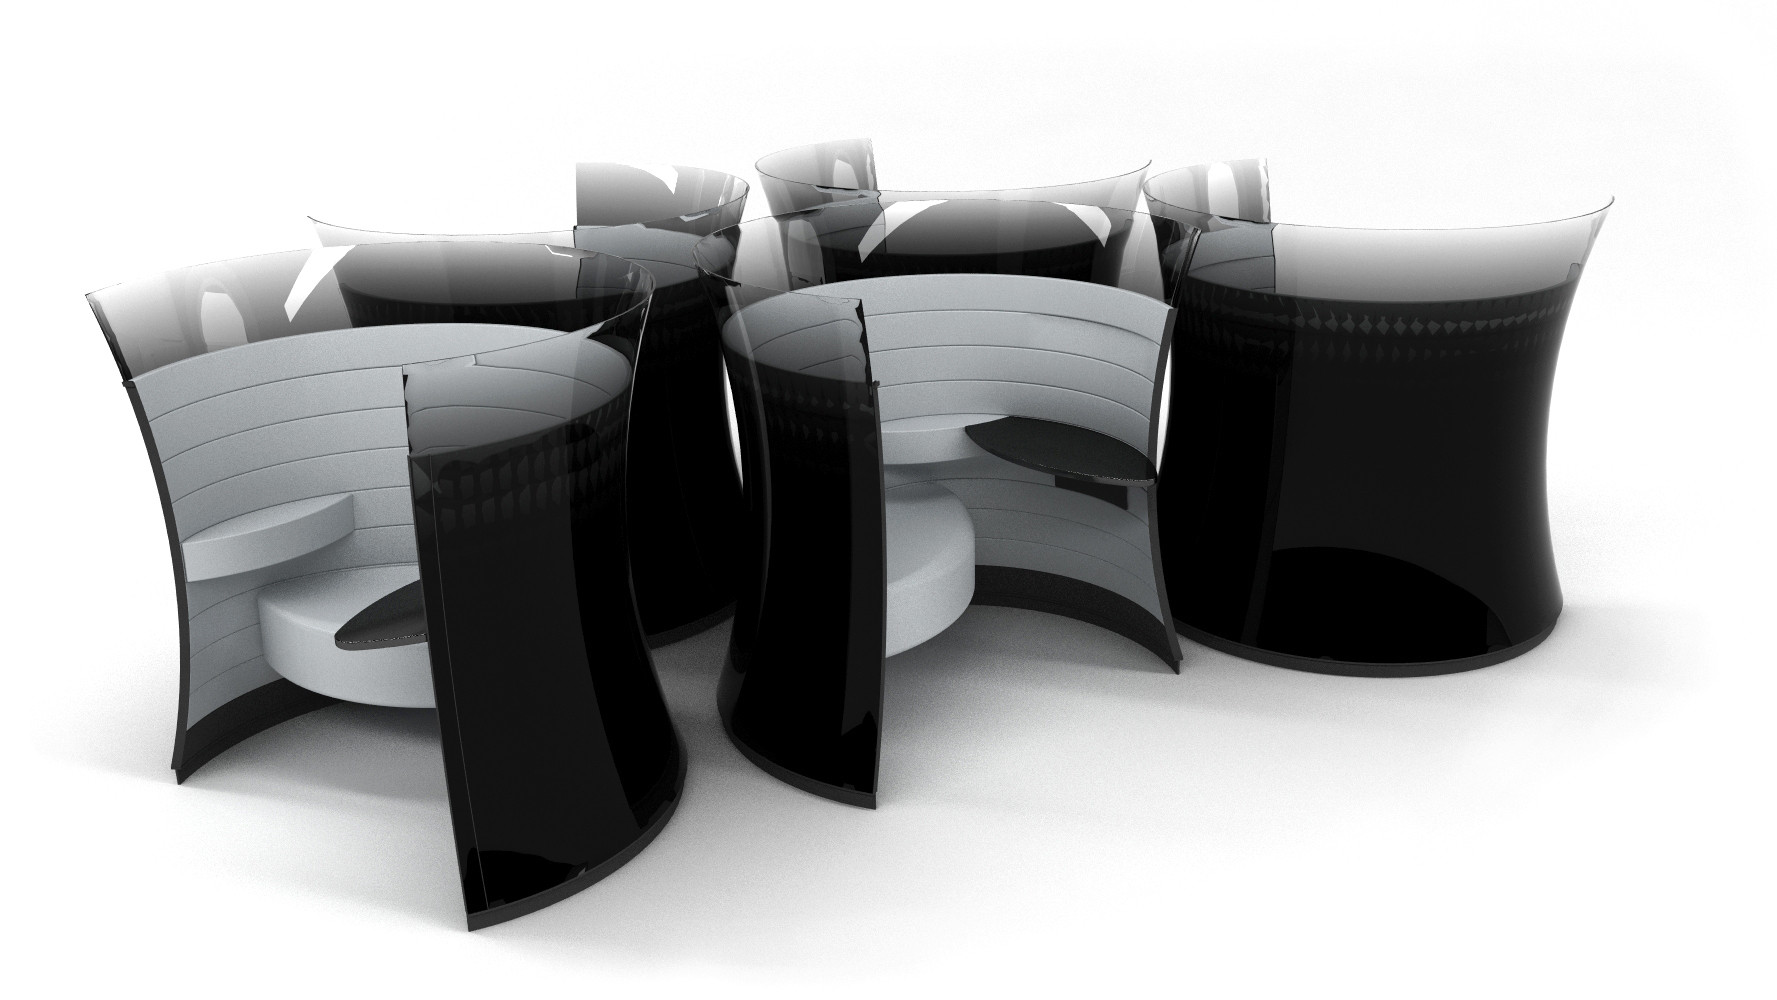 The Solus Chair, designed by Foster + Partners. Courtesy of Foster + Partners.